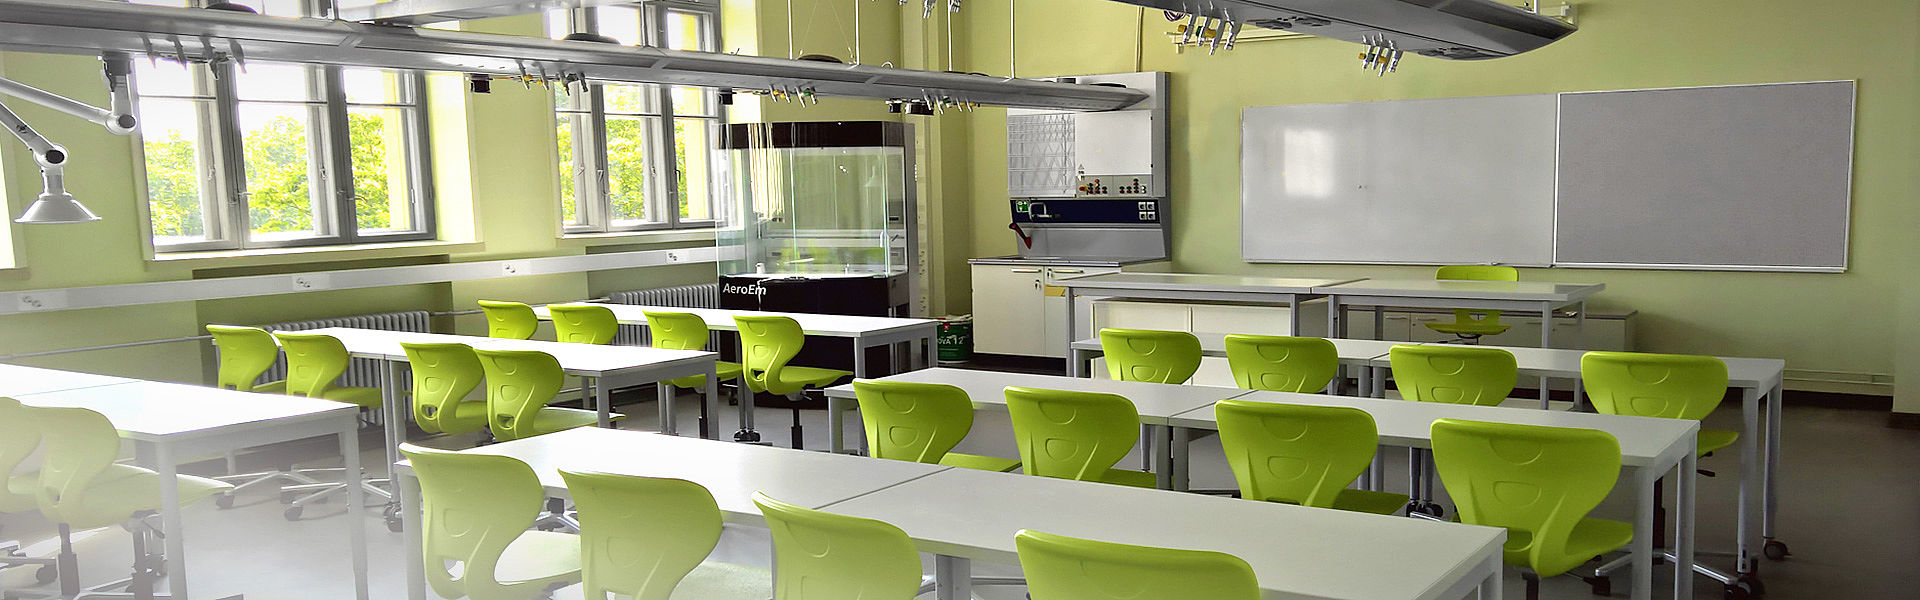 dahlberg science learning room